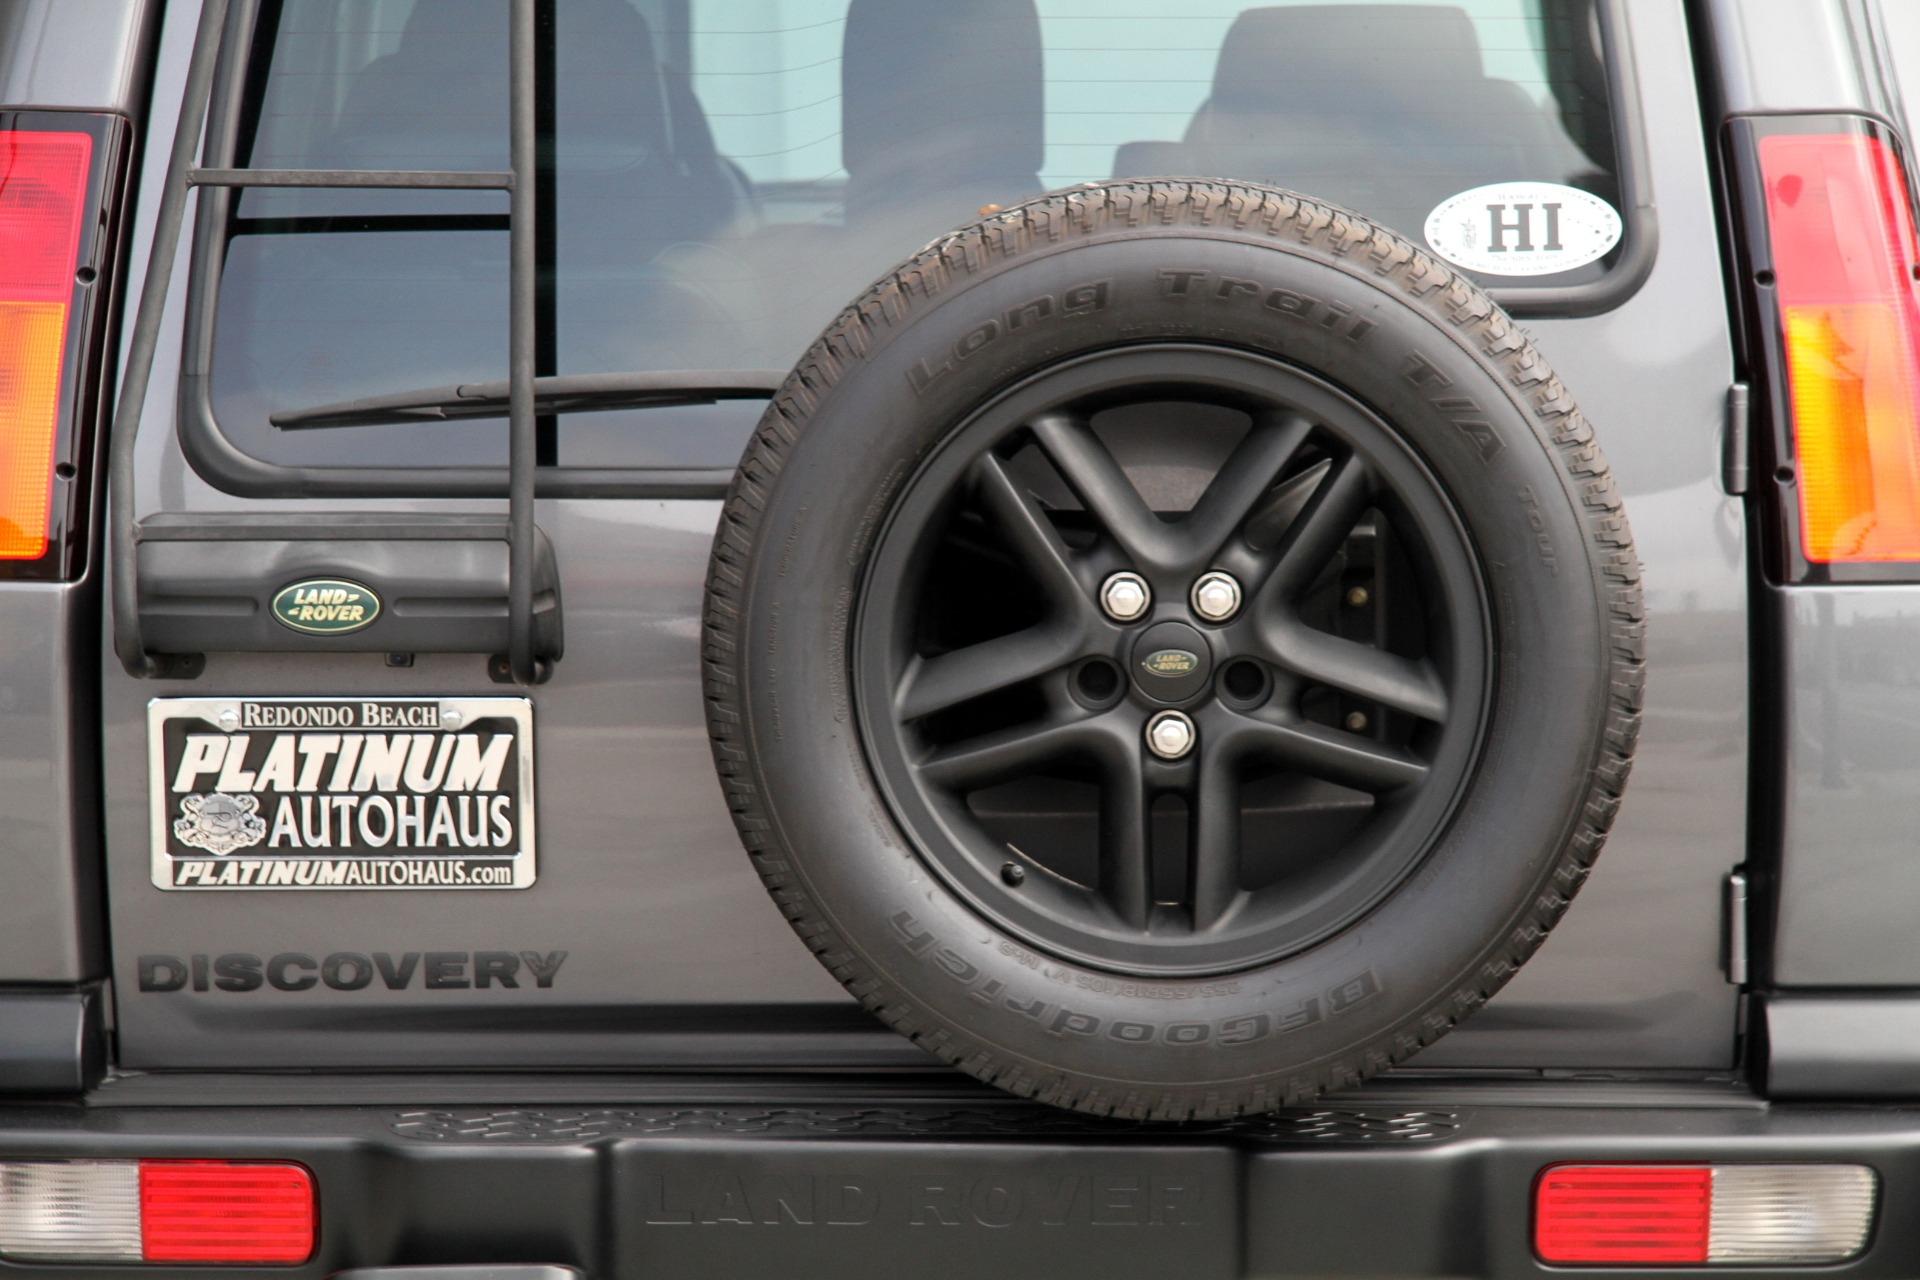 images landrover hse l us wallpaper silver discovery silicon cars front rover bumper land color spec